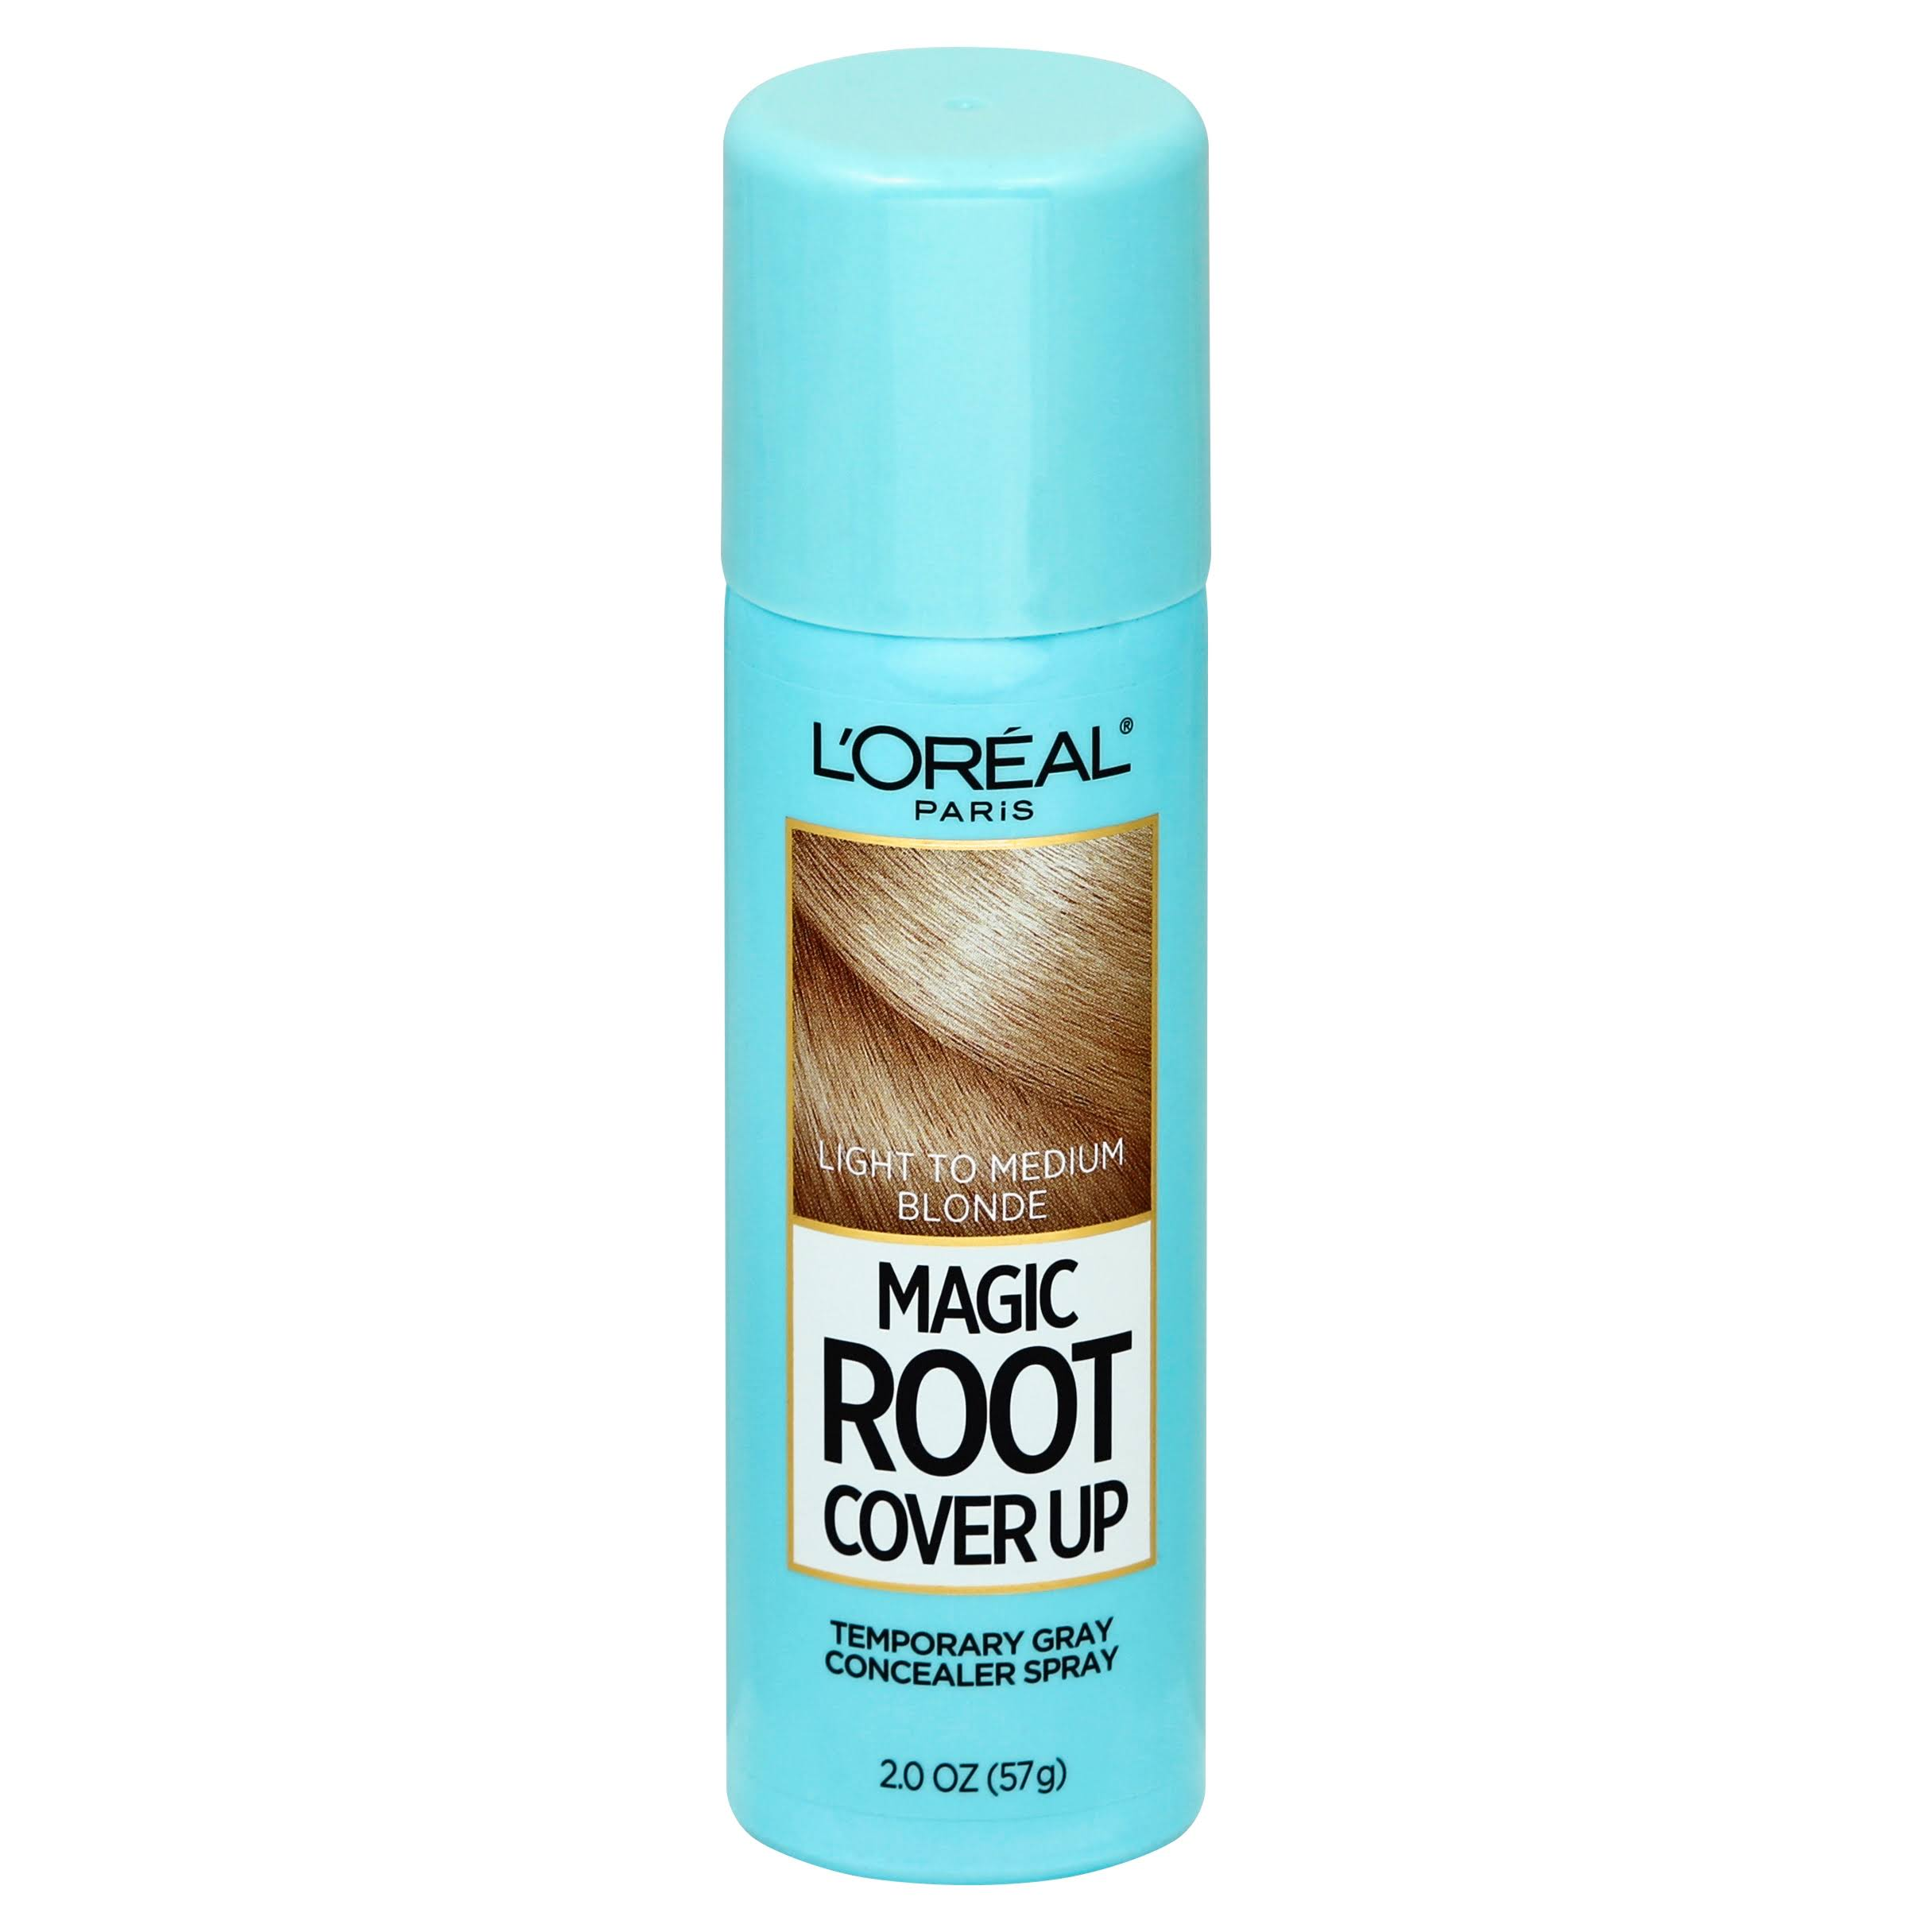 L'oreal Paris Root Cover Up Temporary Gray Concealer Spray - Light to Medium Blonde, 2oz